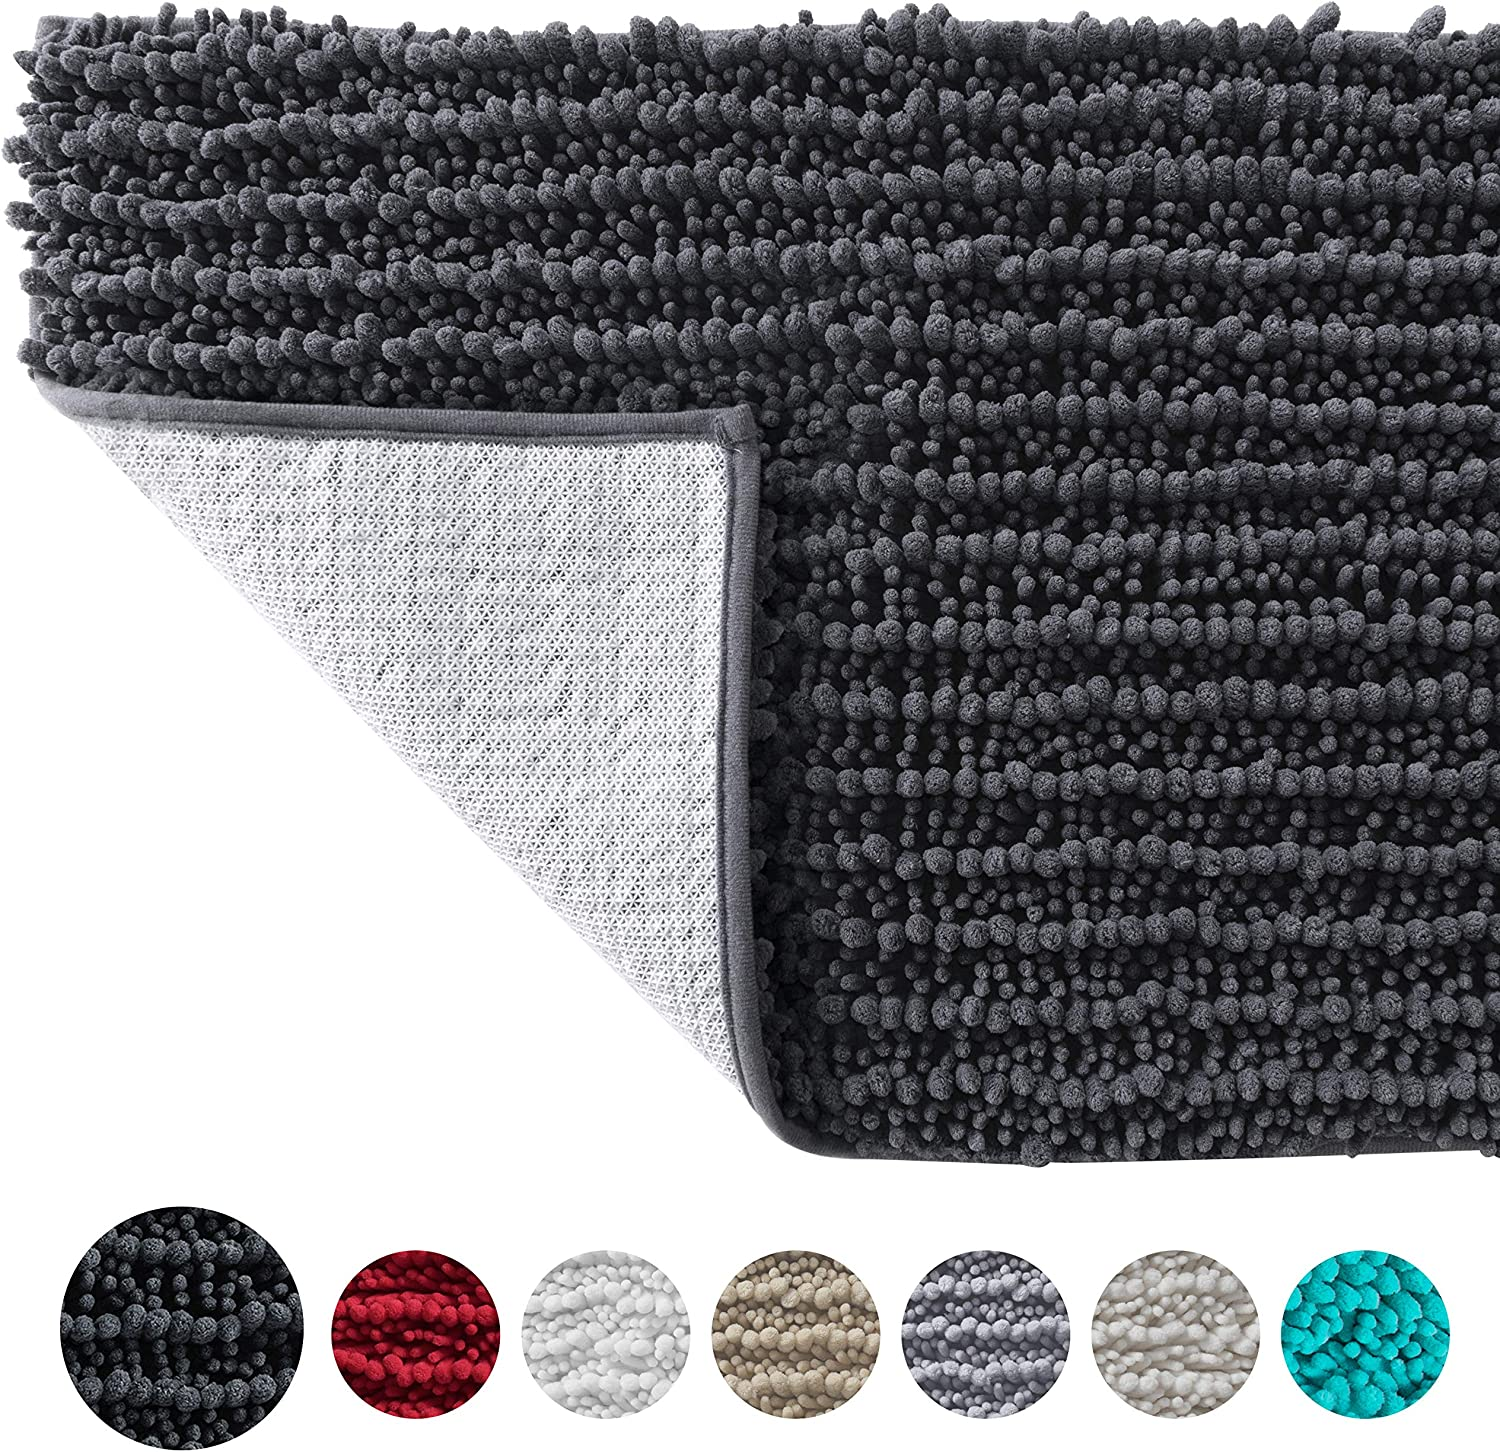 Free Amazon Promo Code 2020 for Luxury Chenille Bathroom Rugs